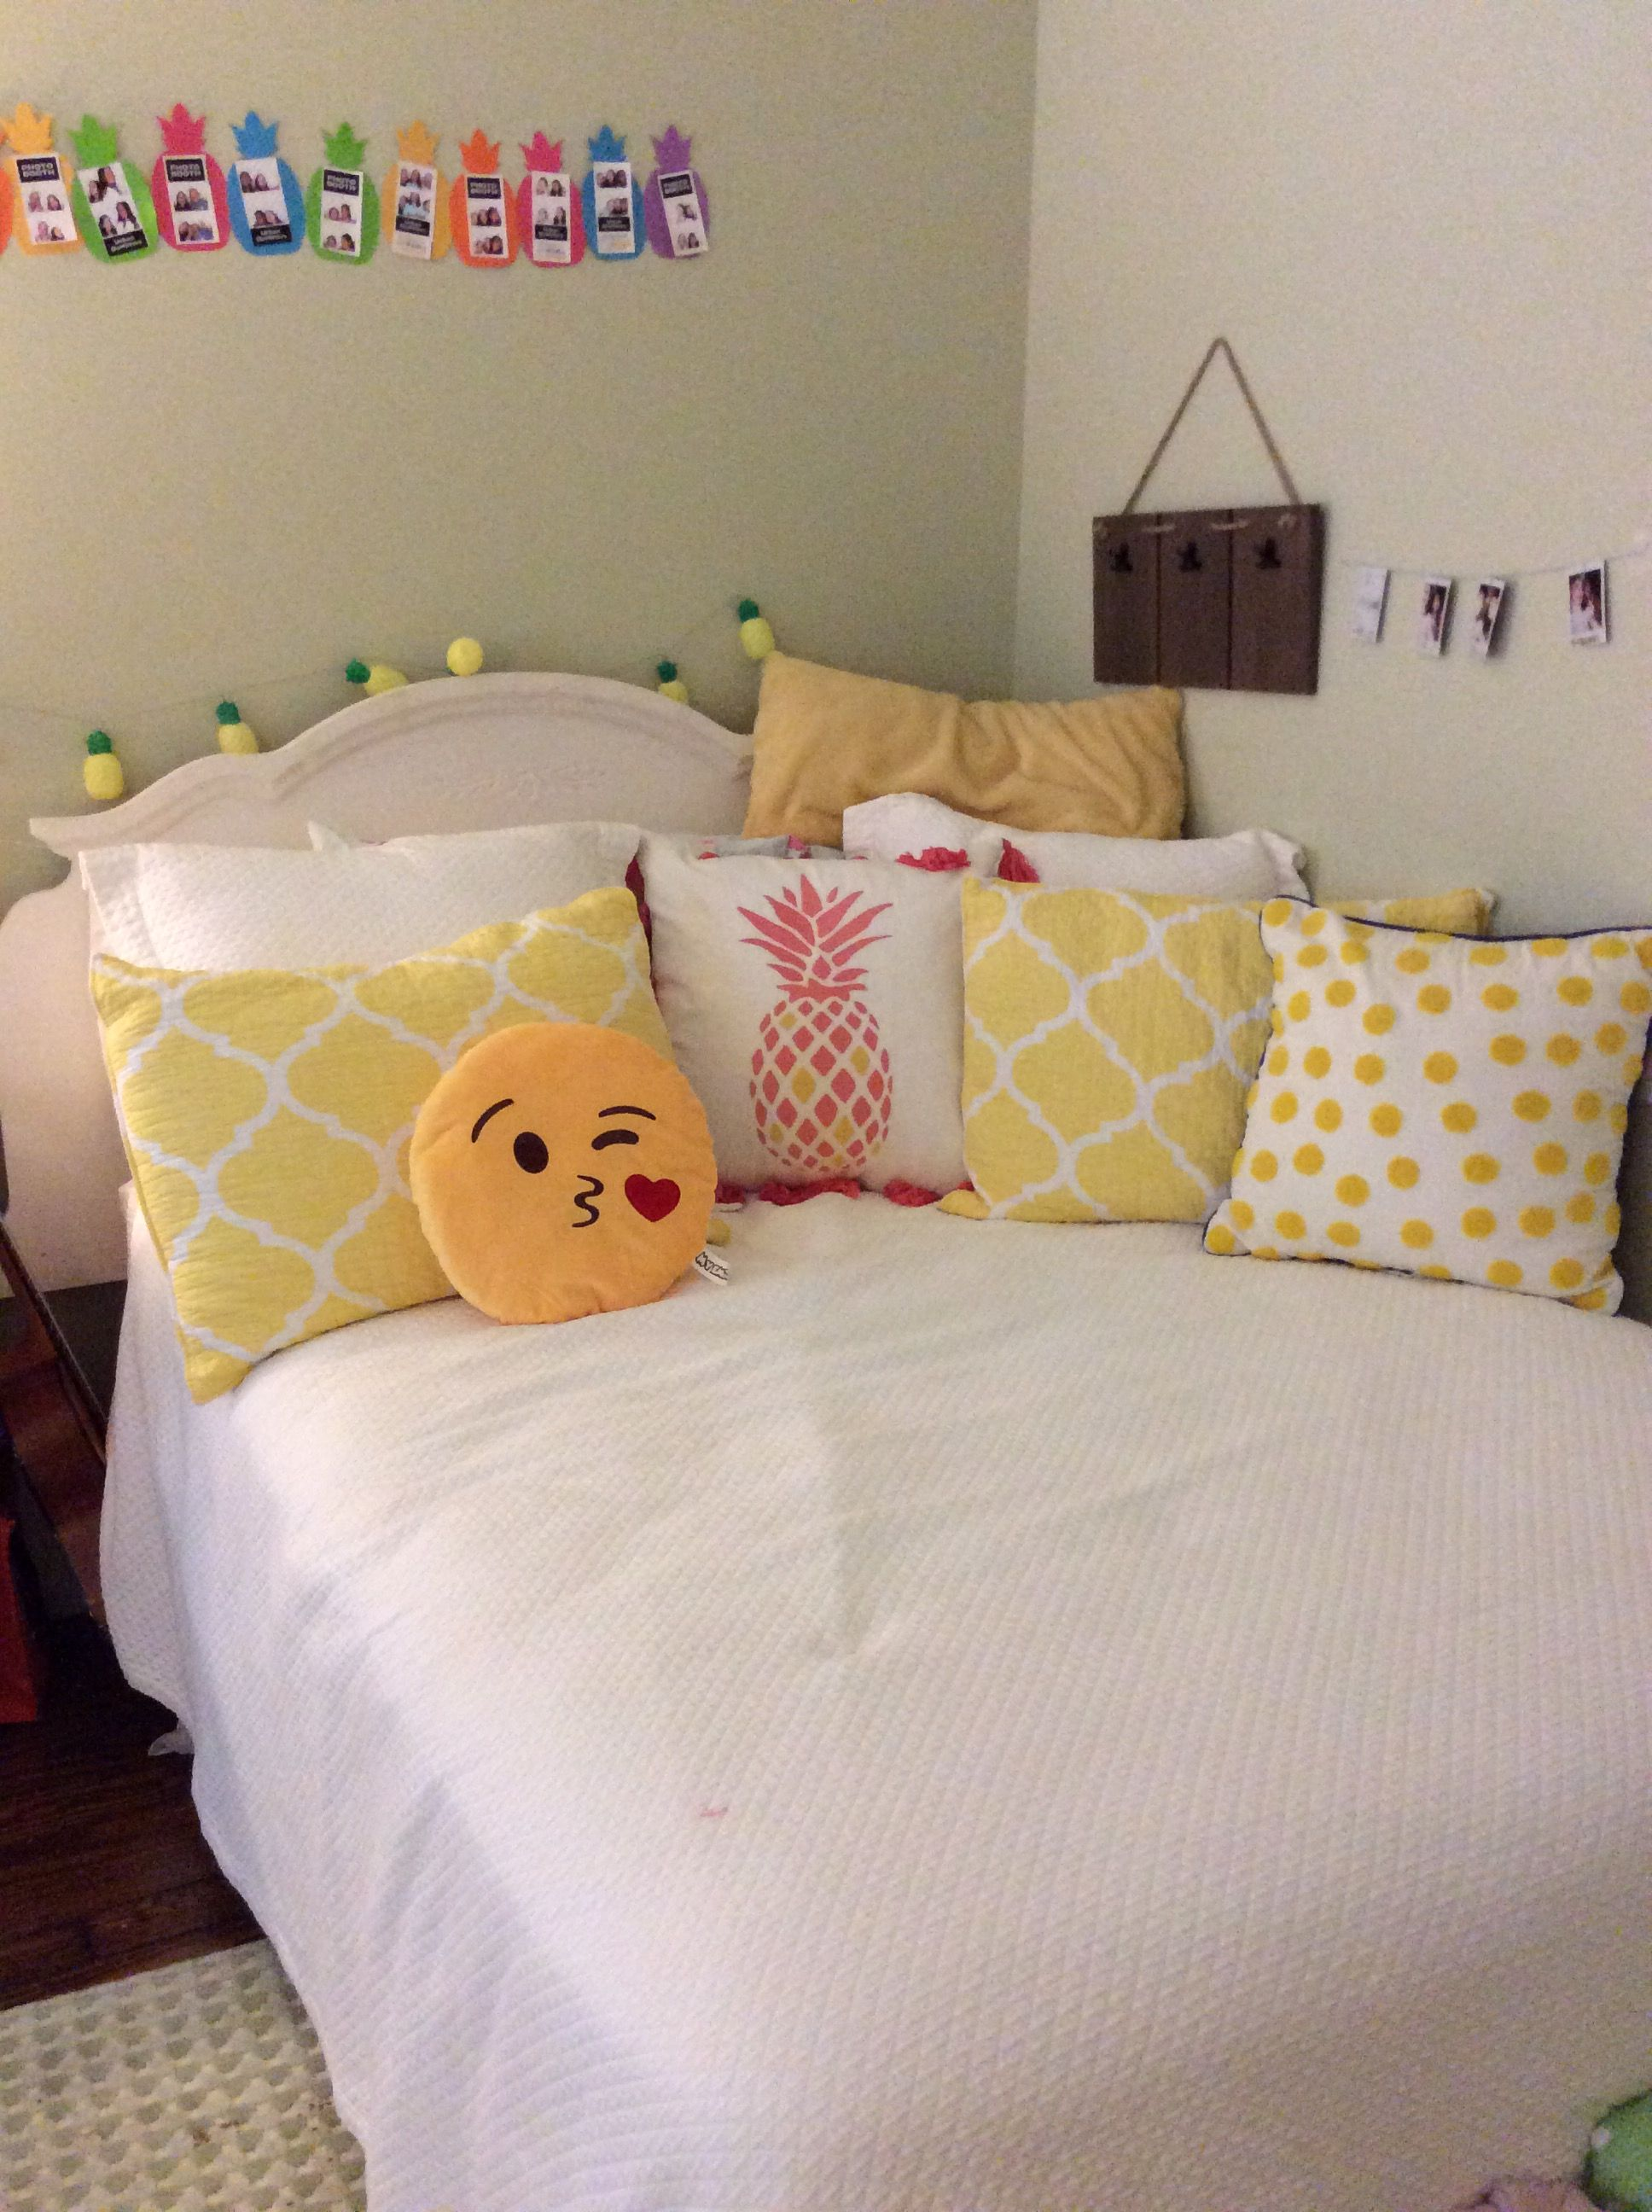 Corner Bed Ideas Bedding And Pillows From Emoji Pillow